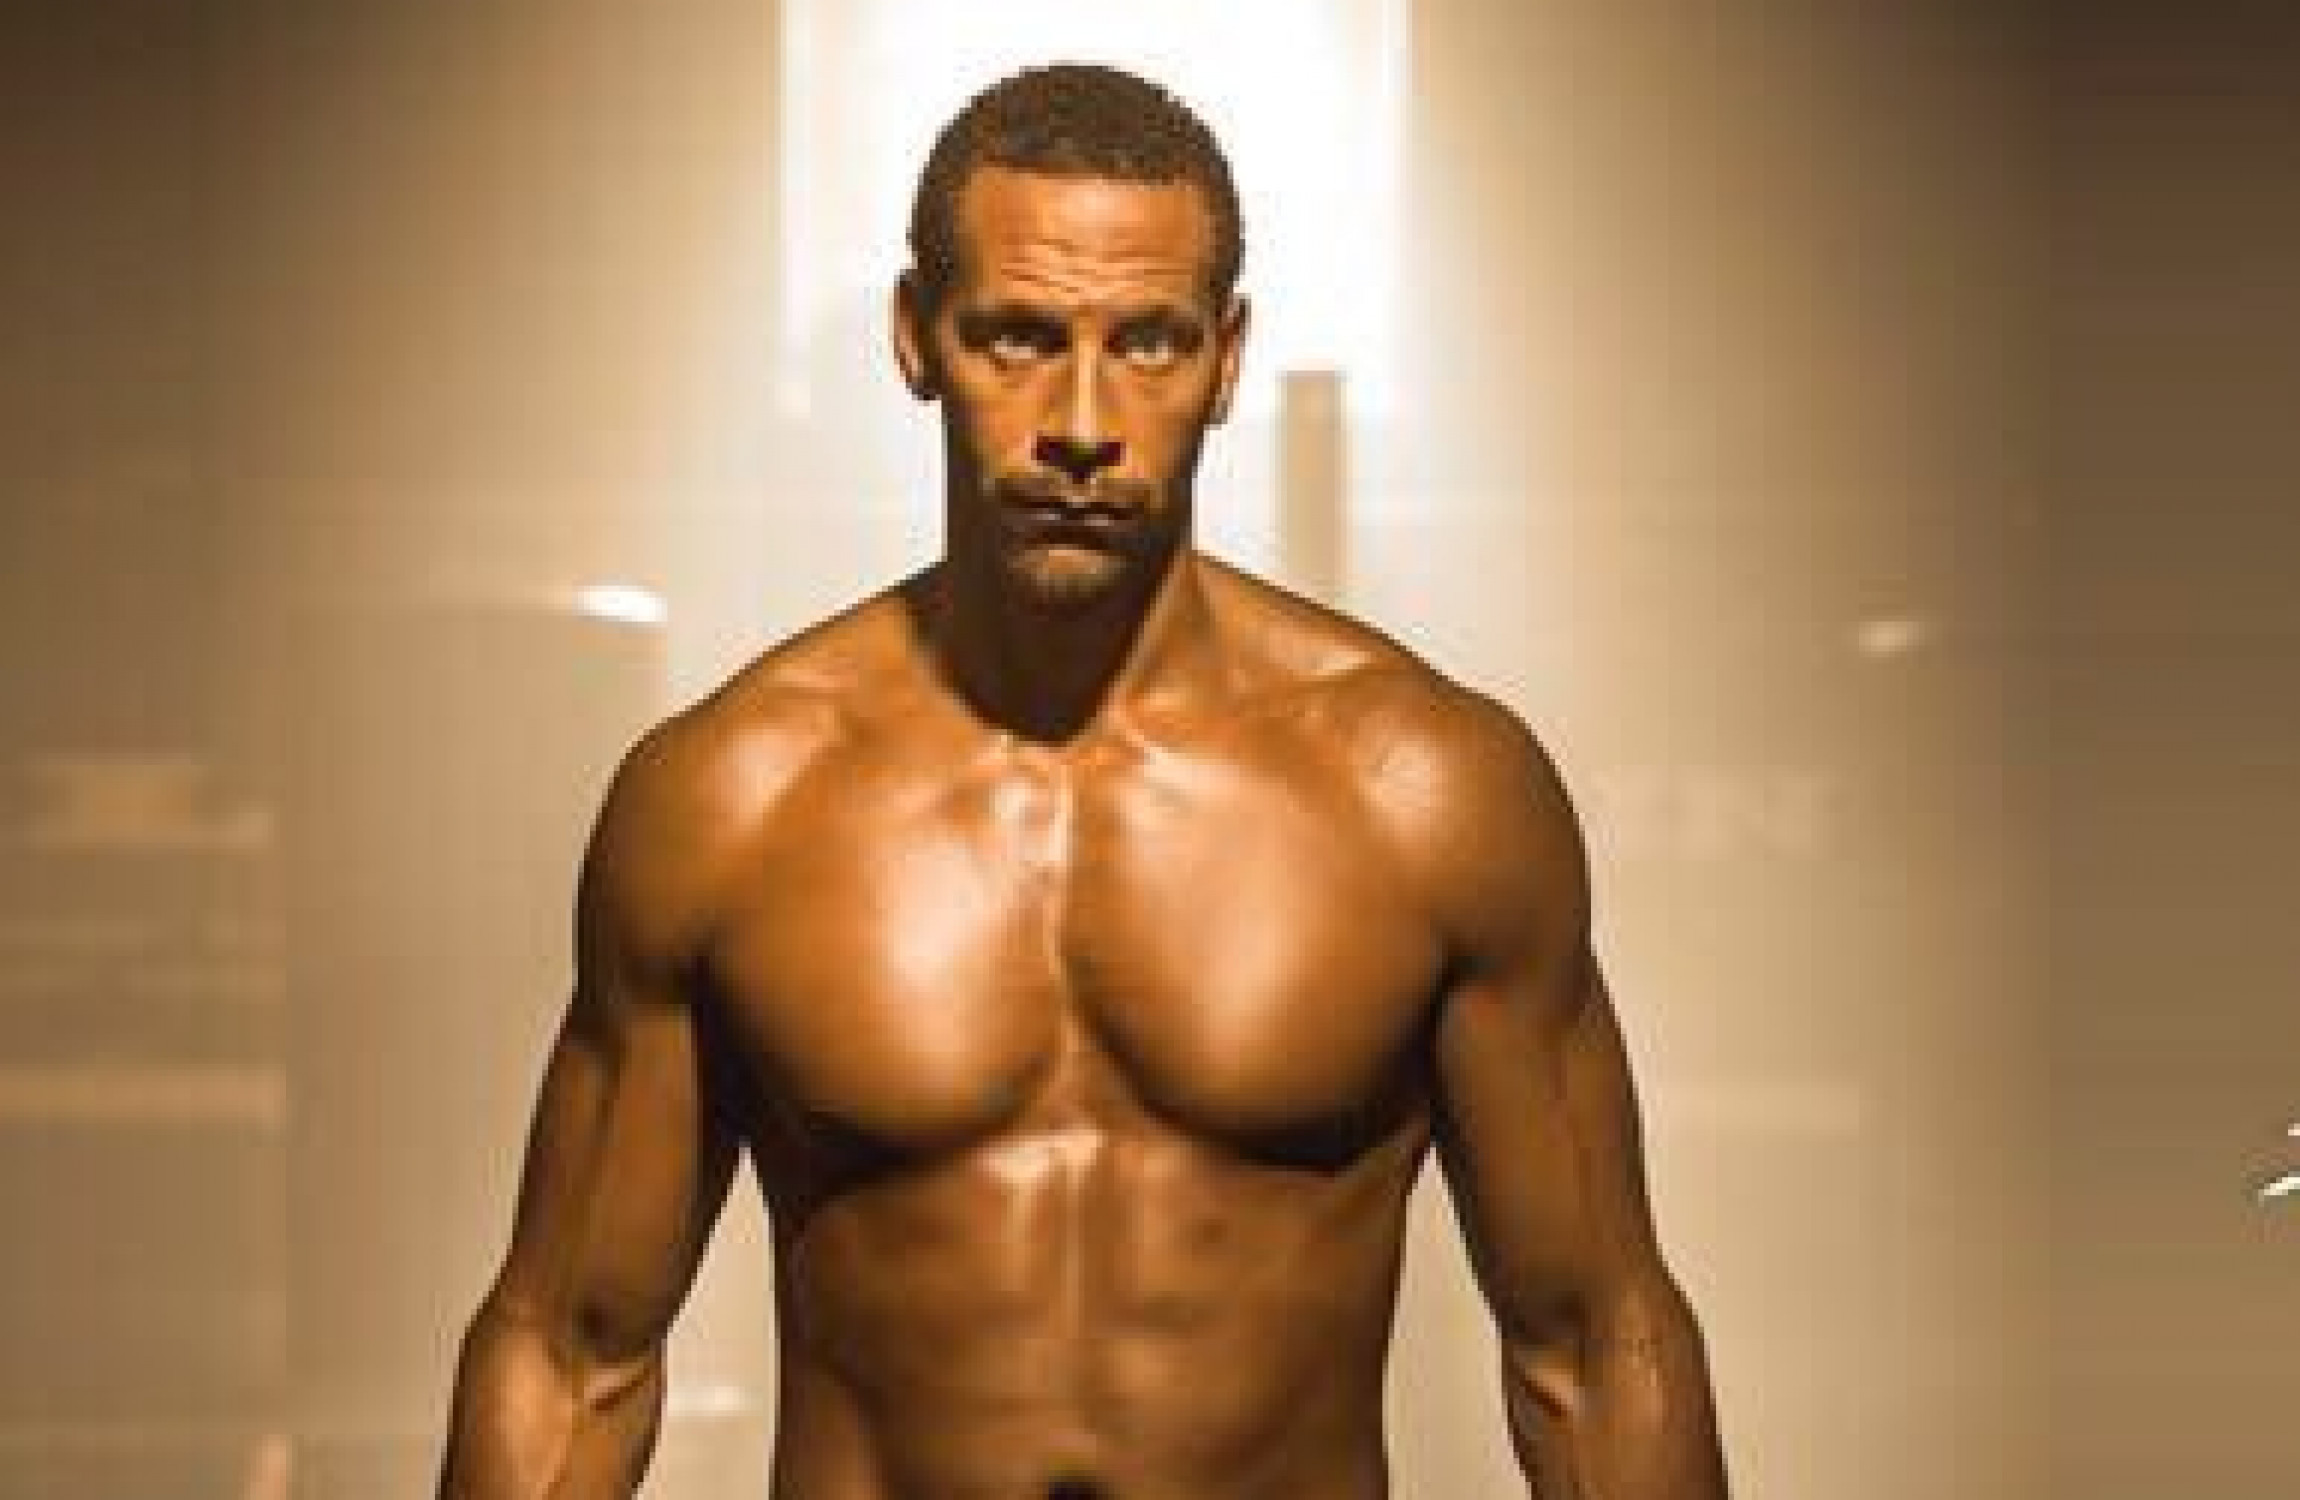 Rio Ferdinand confirms boxing switch: 'I'm doing it because it's a challenge'